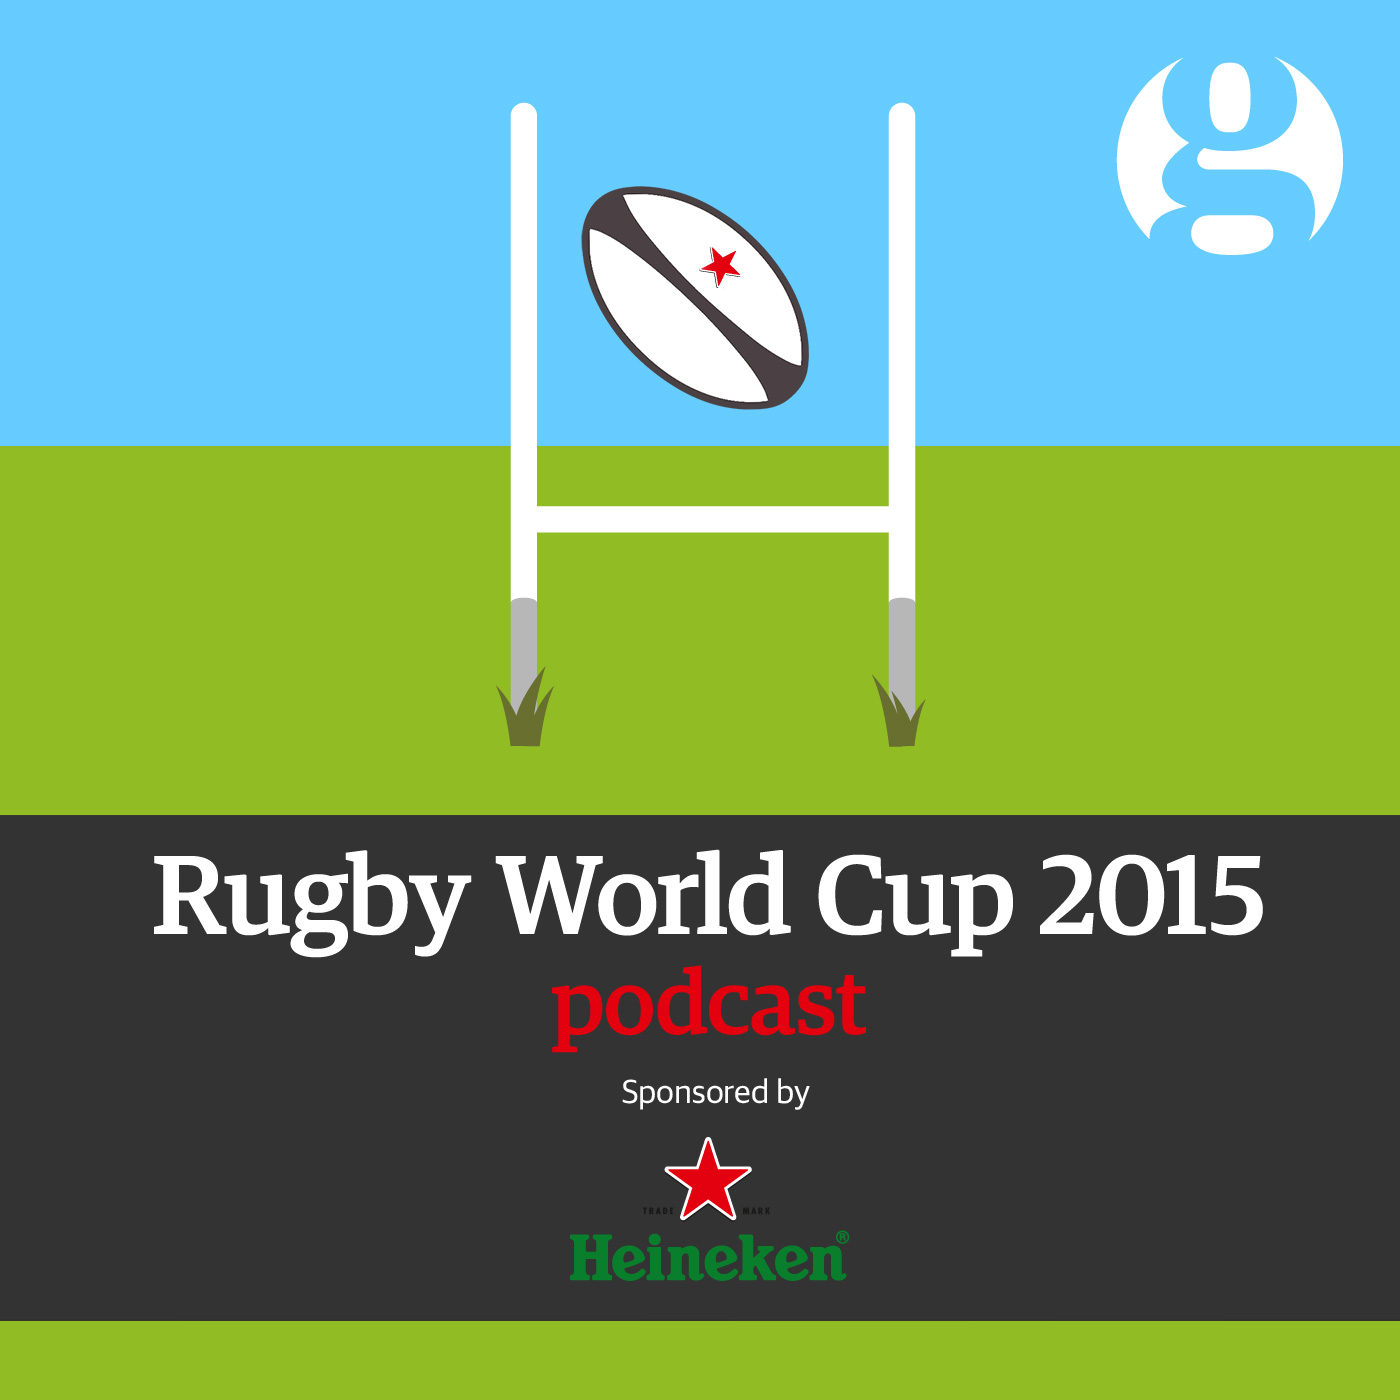 Rugby World Cup 2015 podcast, sponsored by Heineken